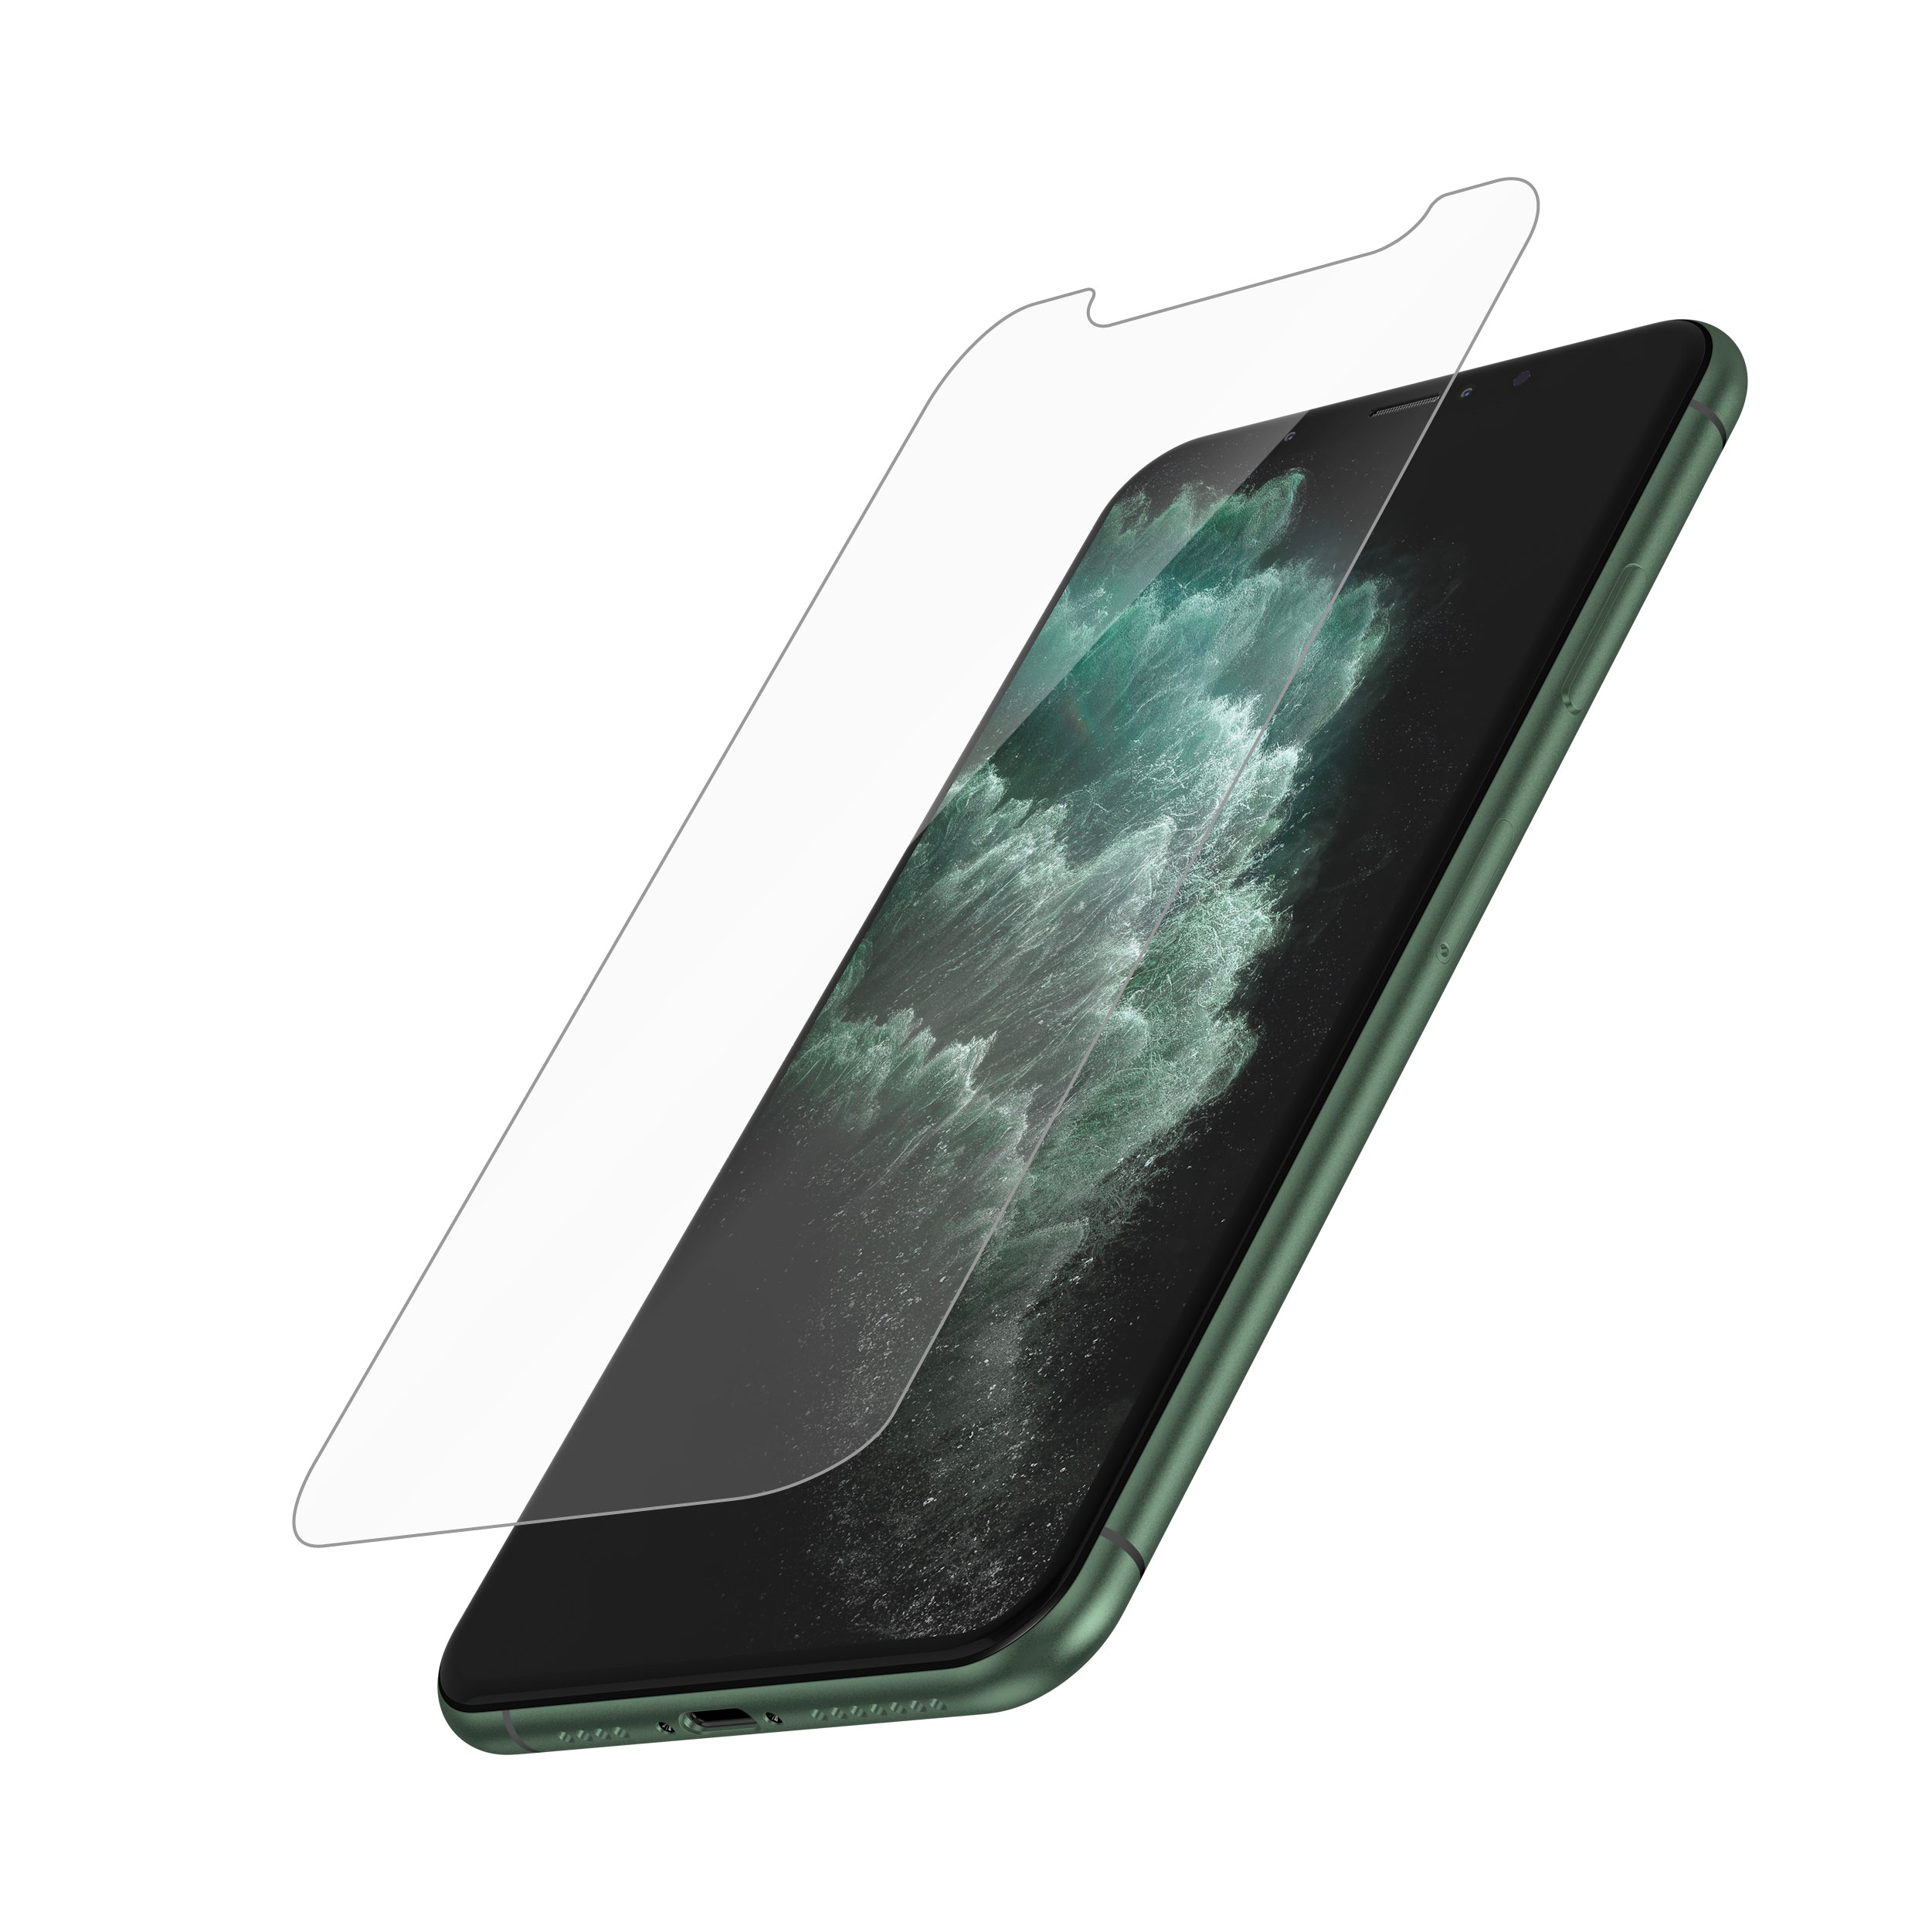 Protective Glass for iPhone 11 Pro